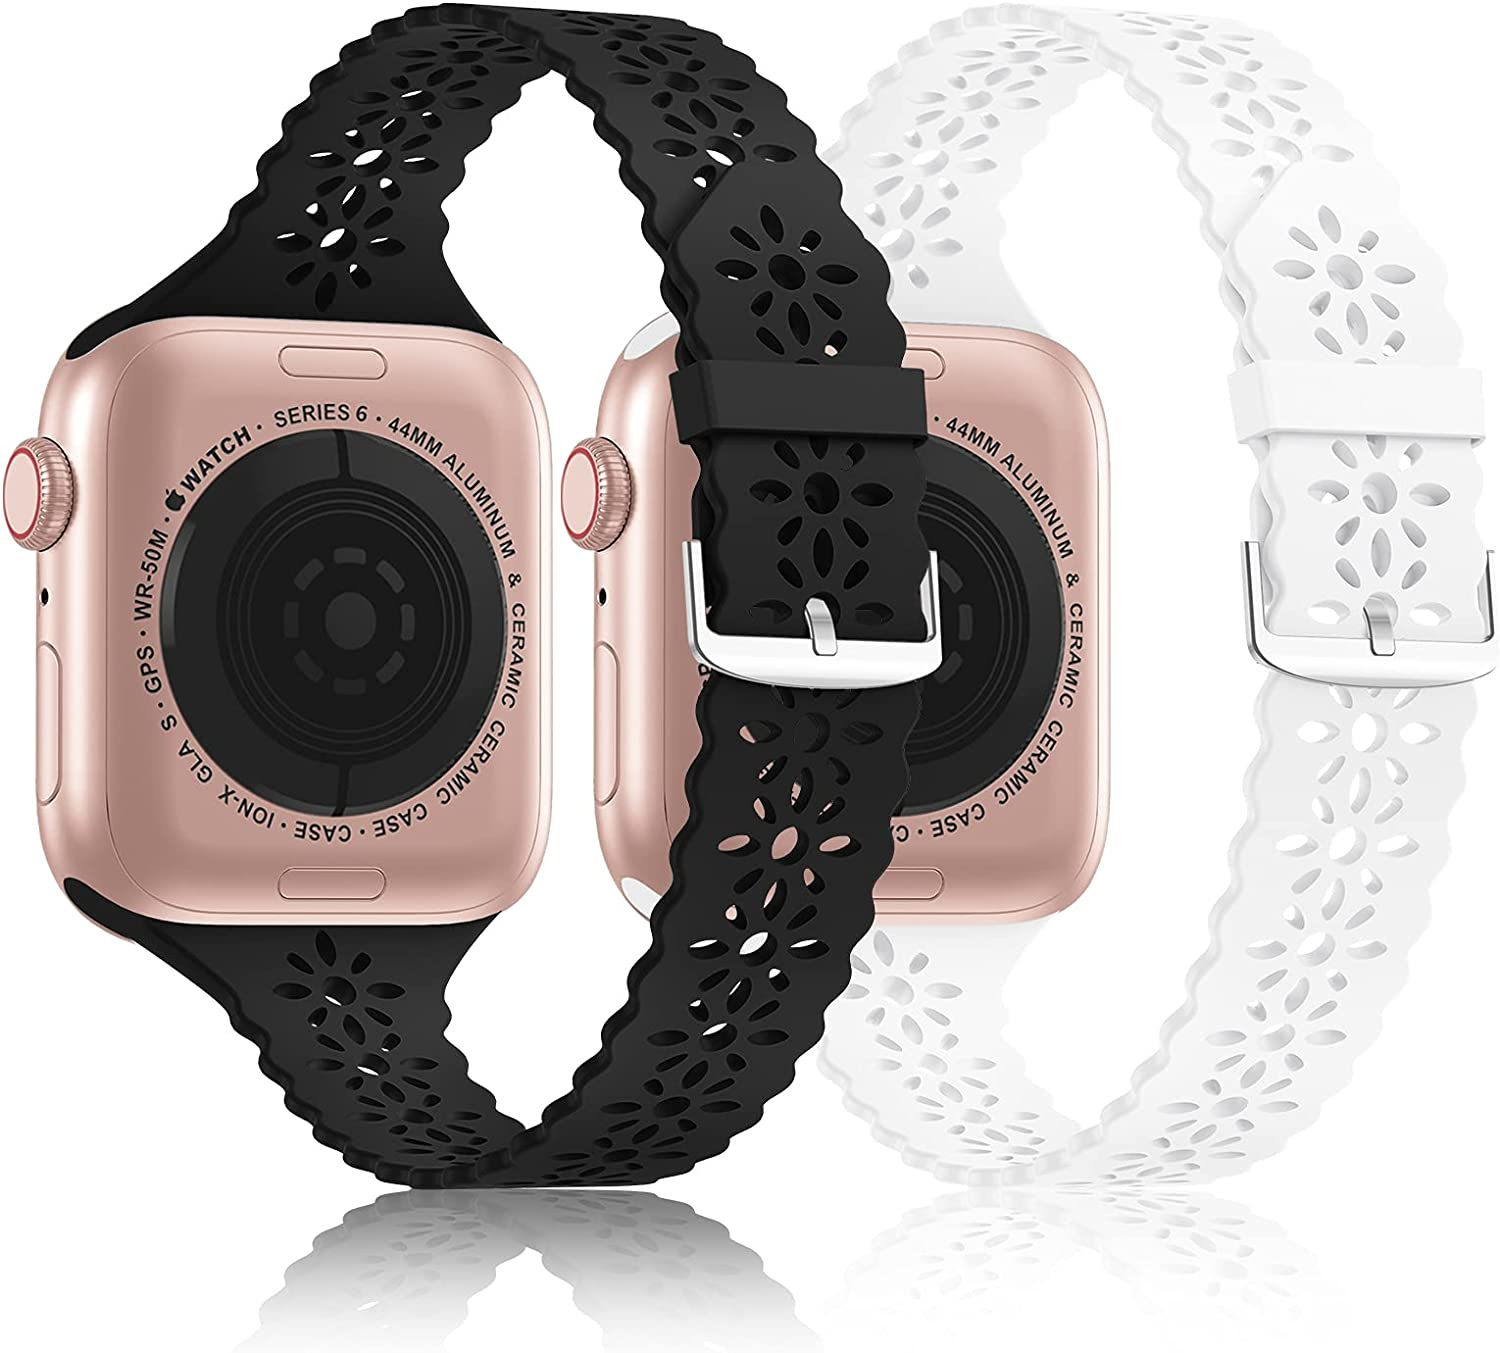 Seizehe Compatible for Apple Watch Bands 38mm 40mm 41mm 42mm 44mm 45mm Women Men, Breathable Soft Silicone Sport iWatch Bands Replacement Strap Compatible for iWatch Series 7/6/5/4/3/2/1/SE